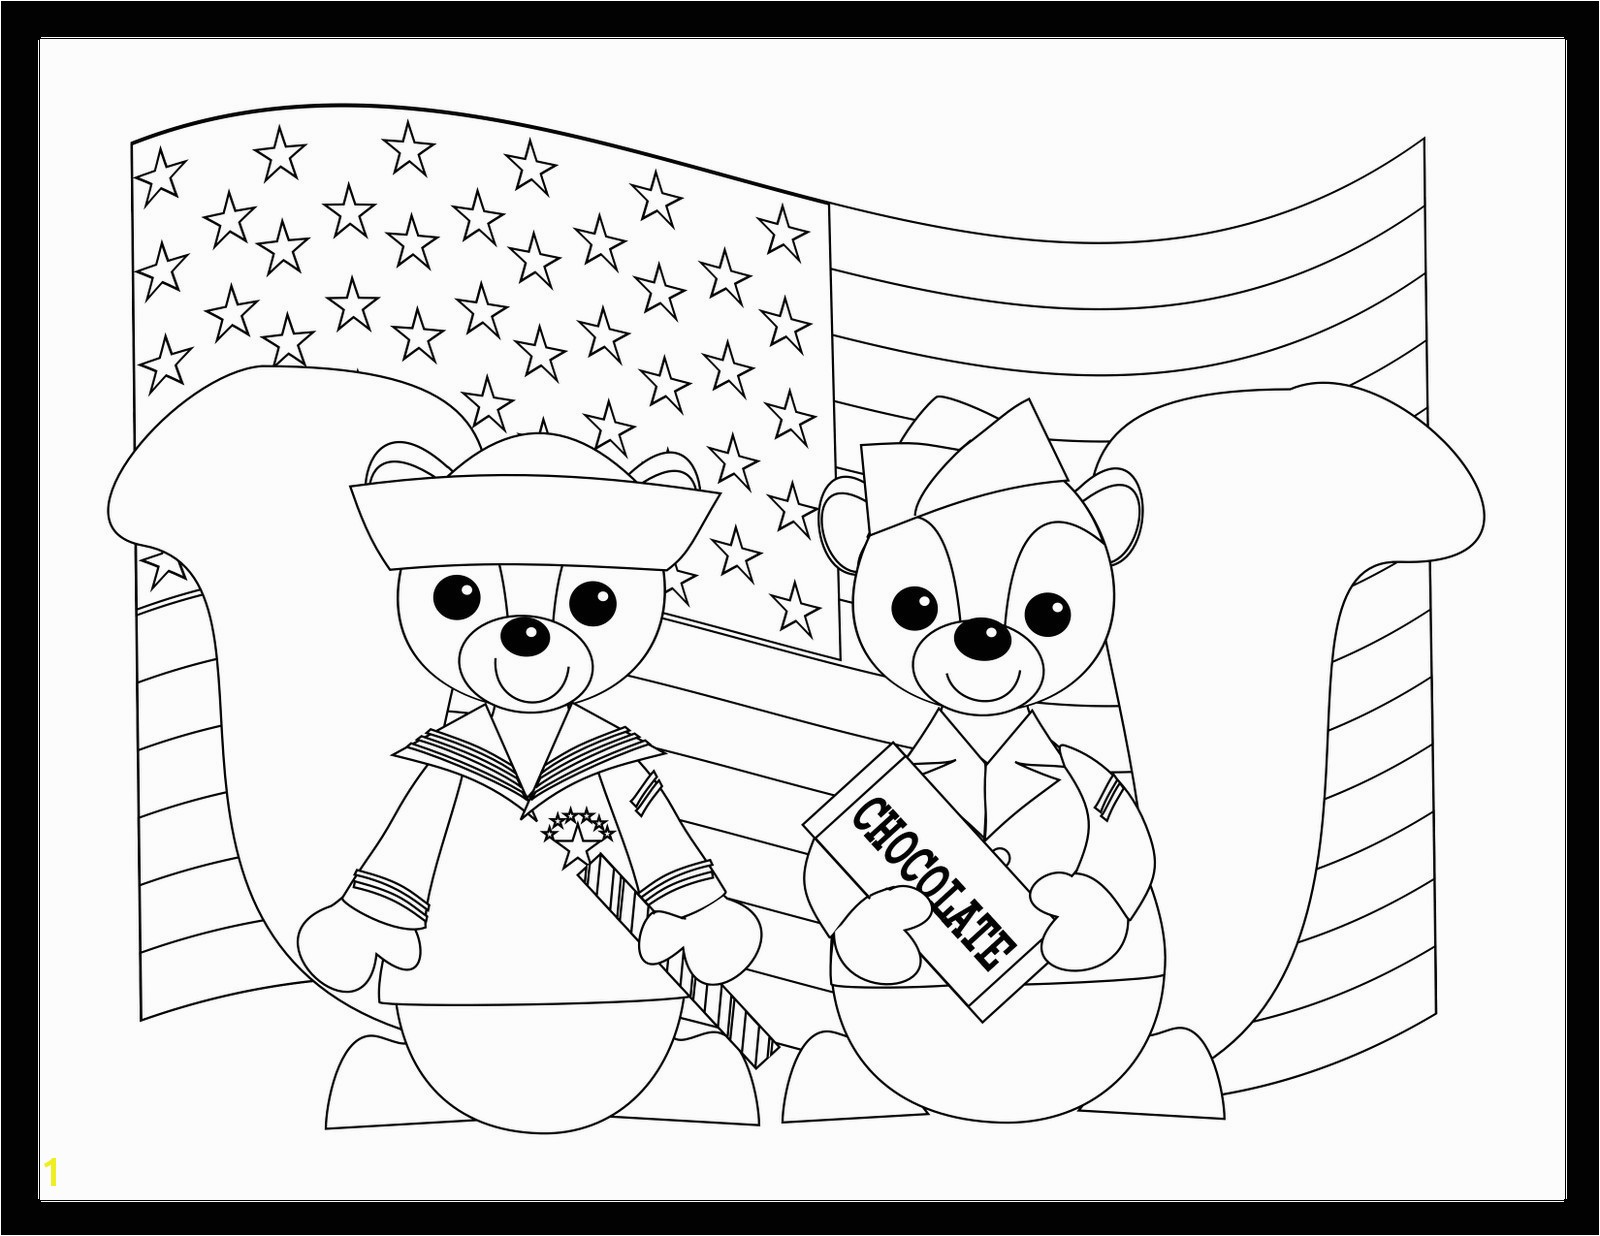 Veterans Day Coloring Pages Best Veterans Day Coloring Pages To Print Printable Coloring Pages For